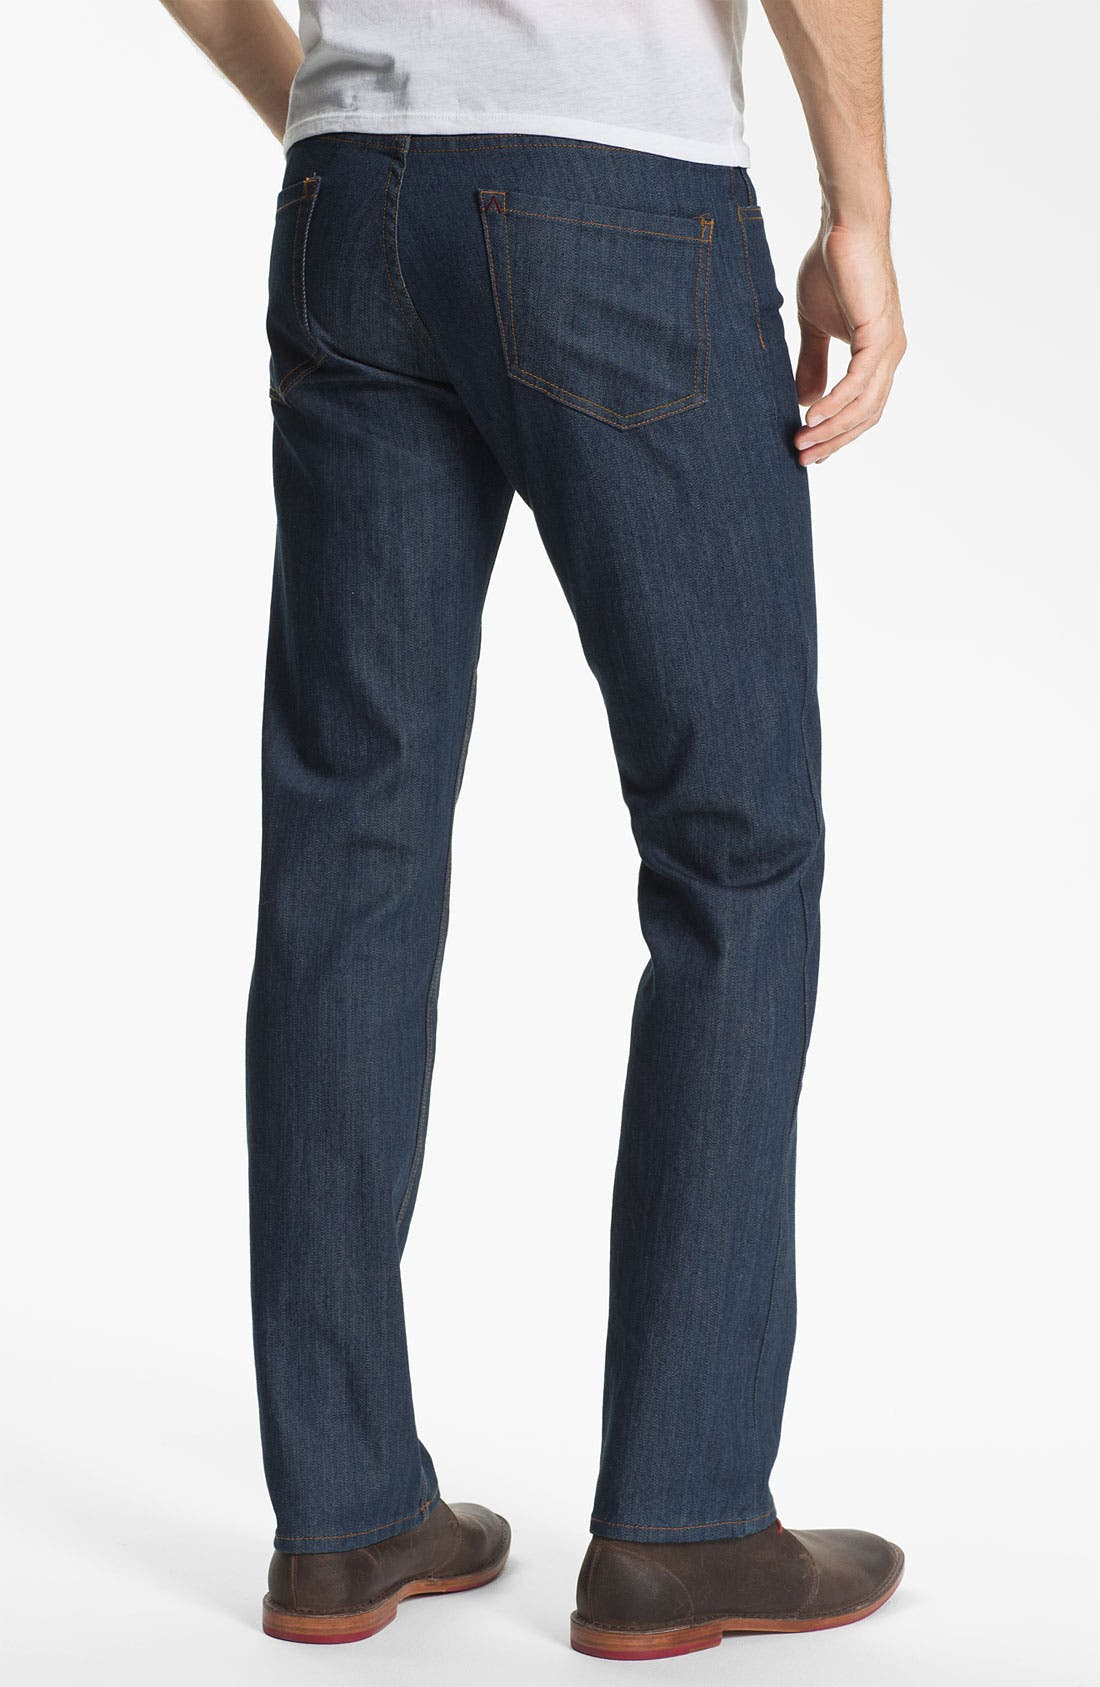 Alternate Image 1 Selected - RVCA Slim Straight Leg Jeans (Classic Blue)